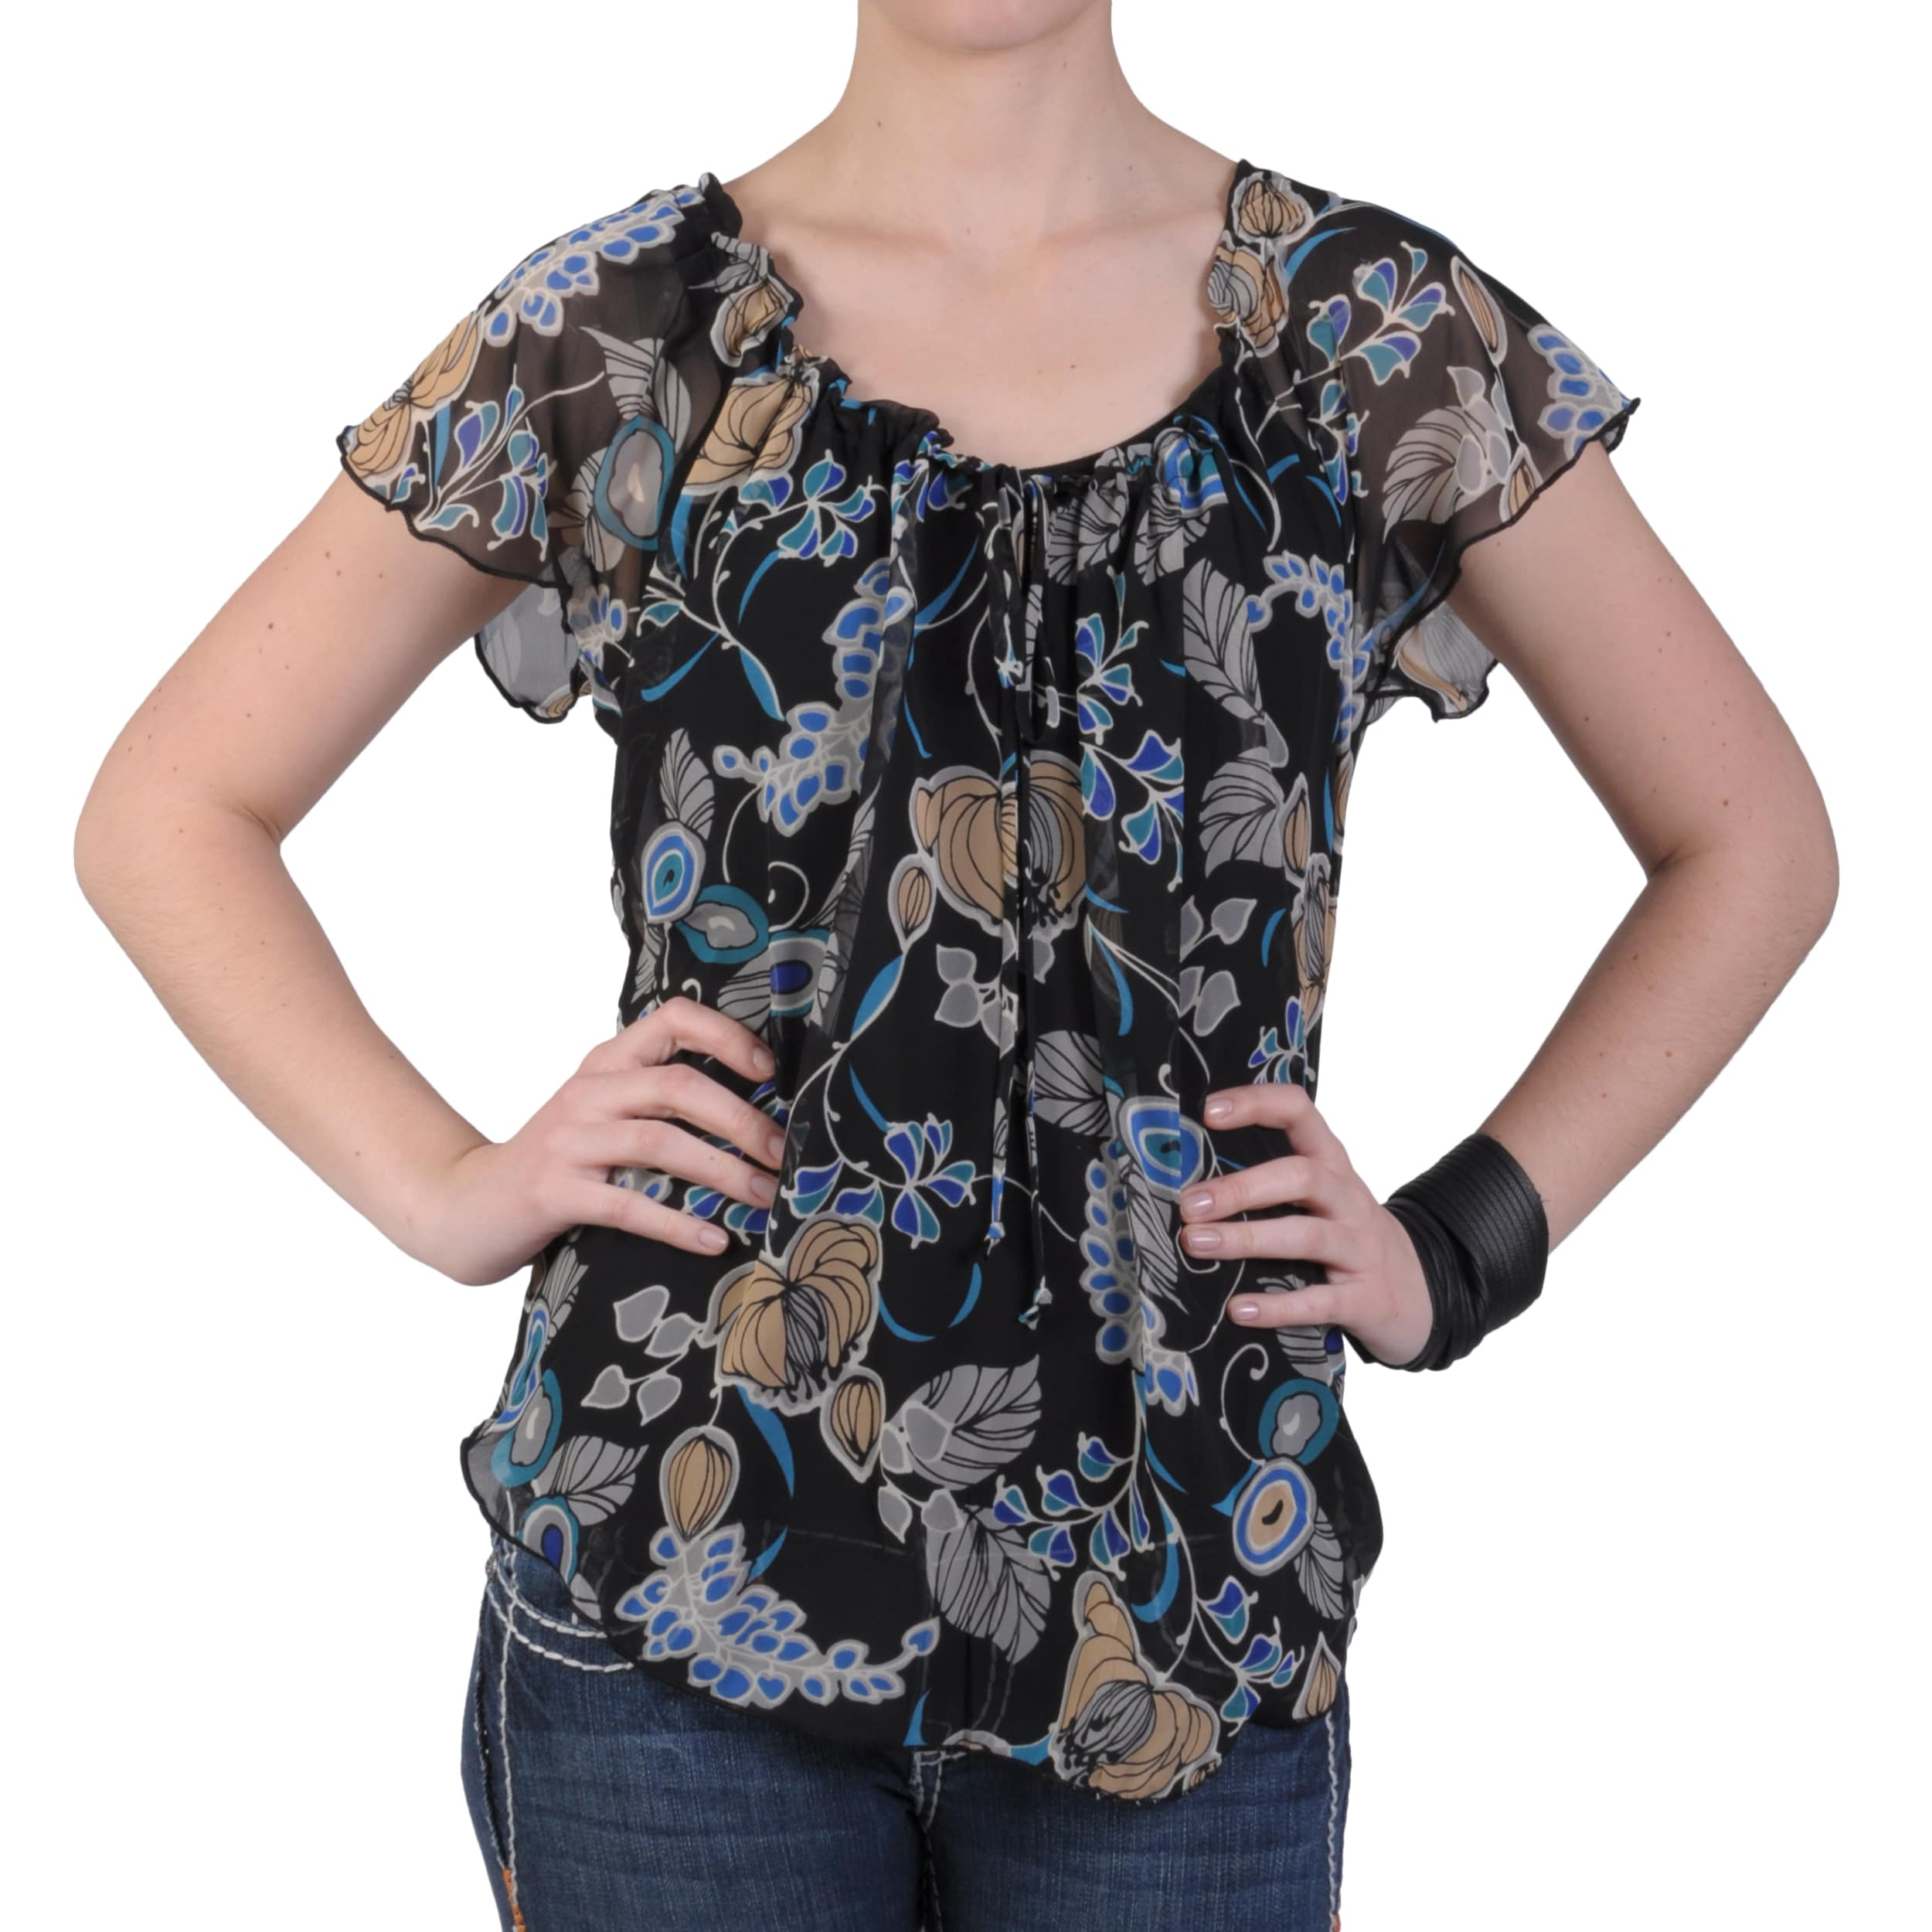 32ec13d23d7 Shop Journee Collection Women s Contemporary Plus Sheer Short-sleeve Peasant  Blouse - Free Shipping On Orders Over  45 - - 6595610